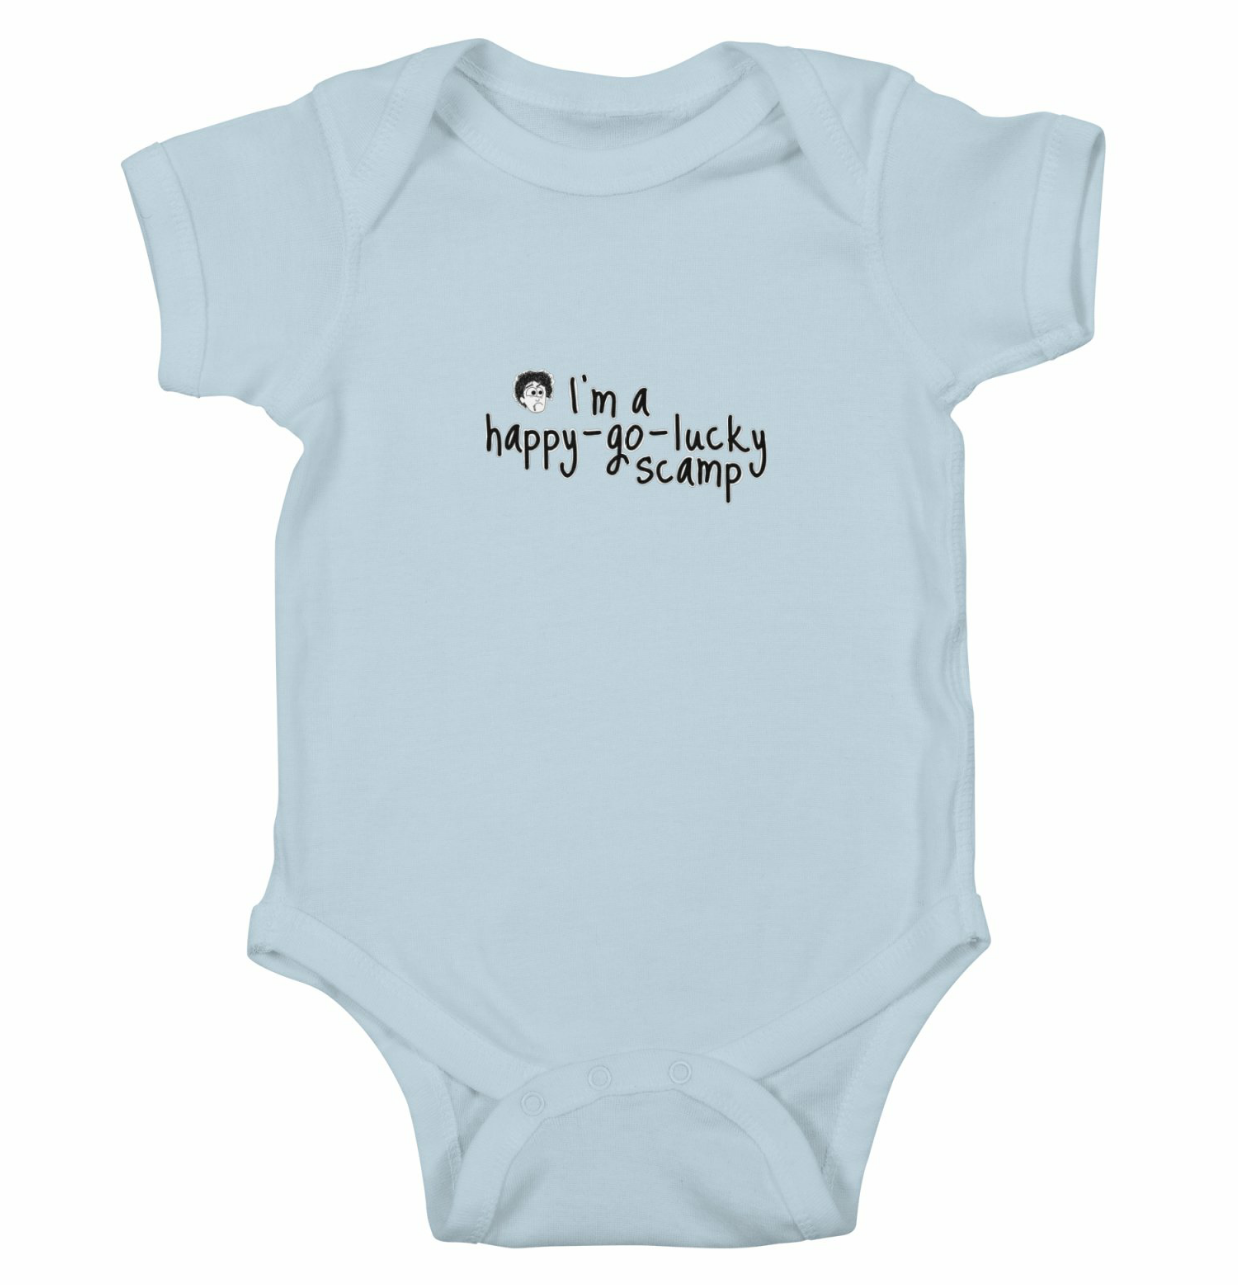 Black books baby onesie